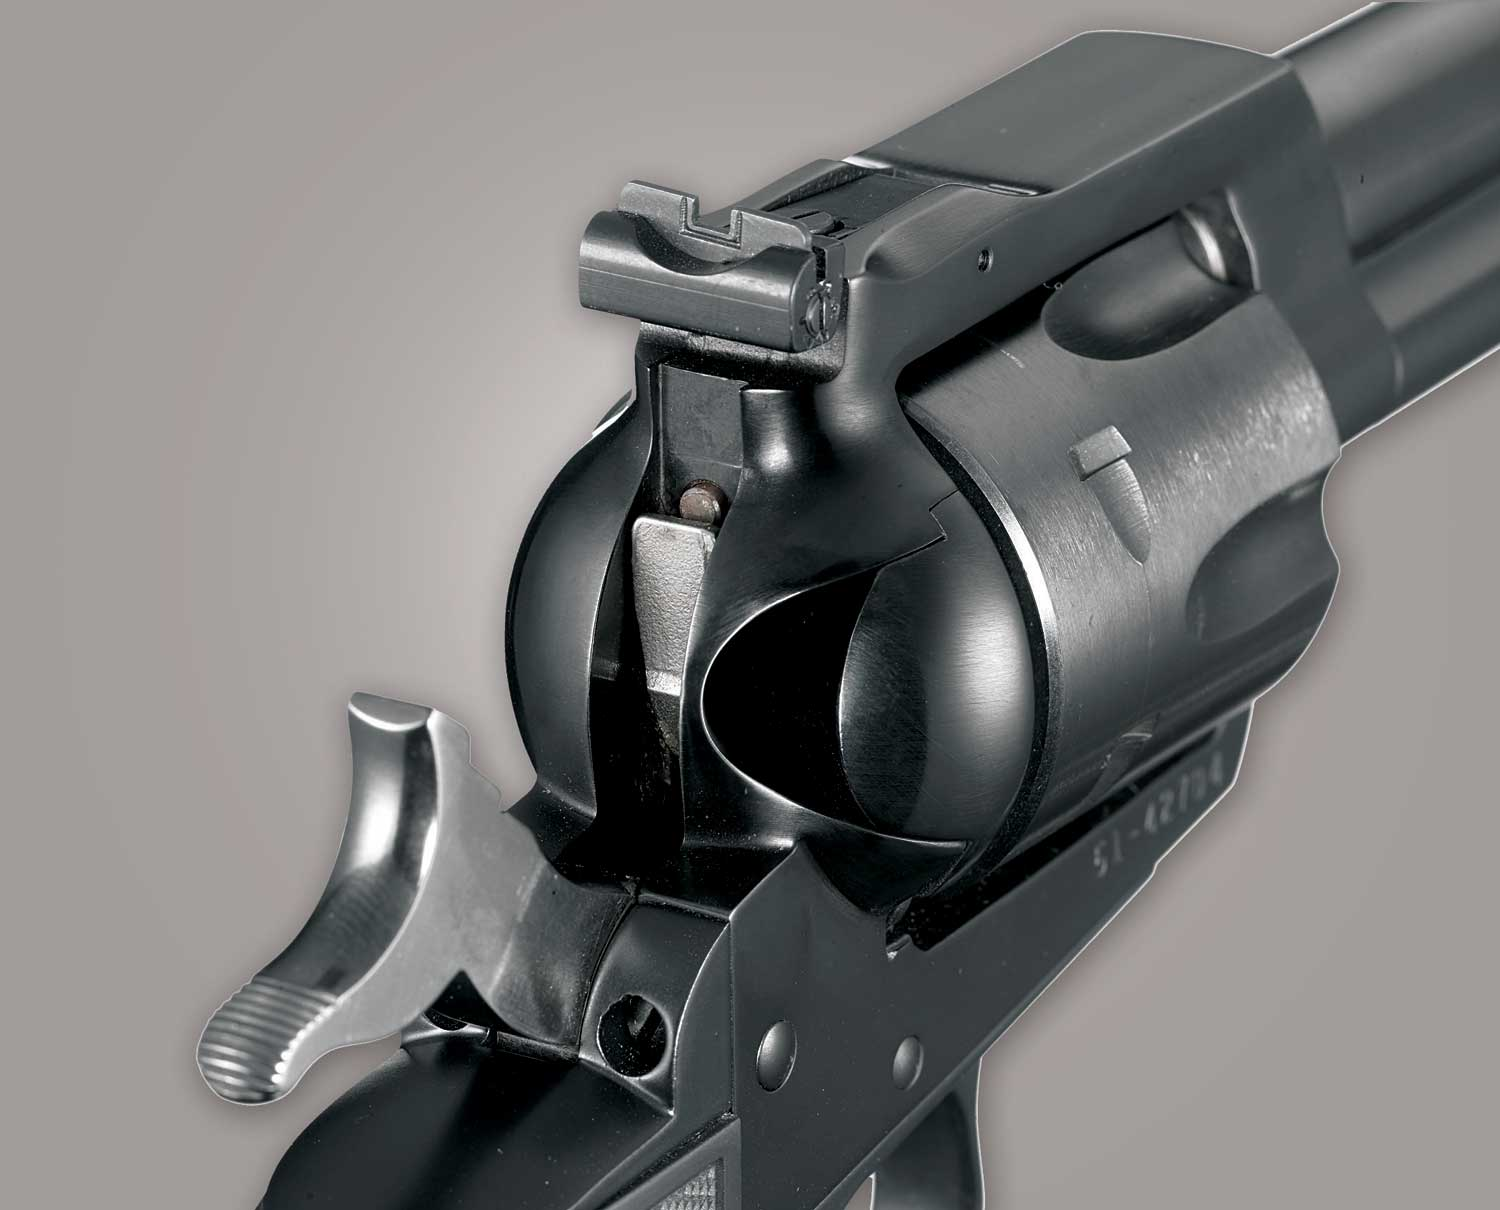 Transfer bar on a revolver handgun